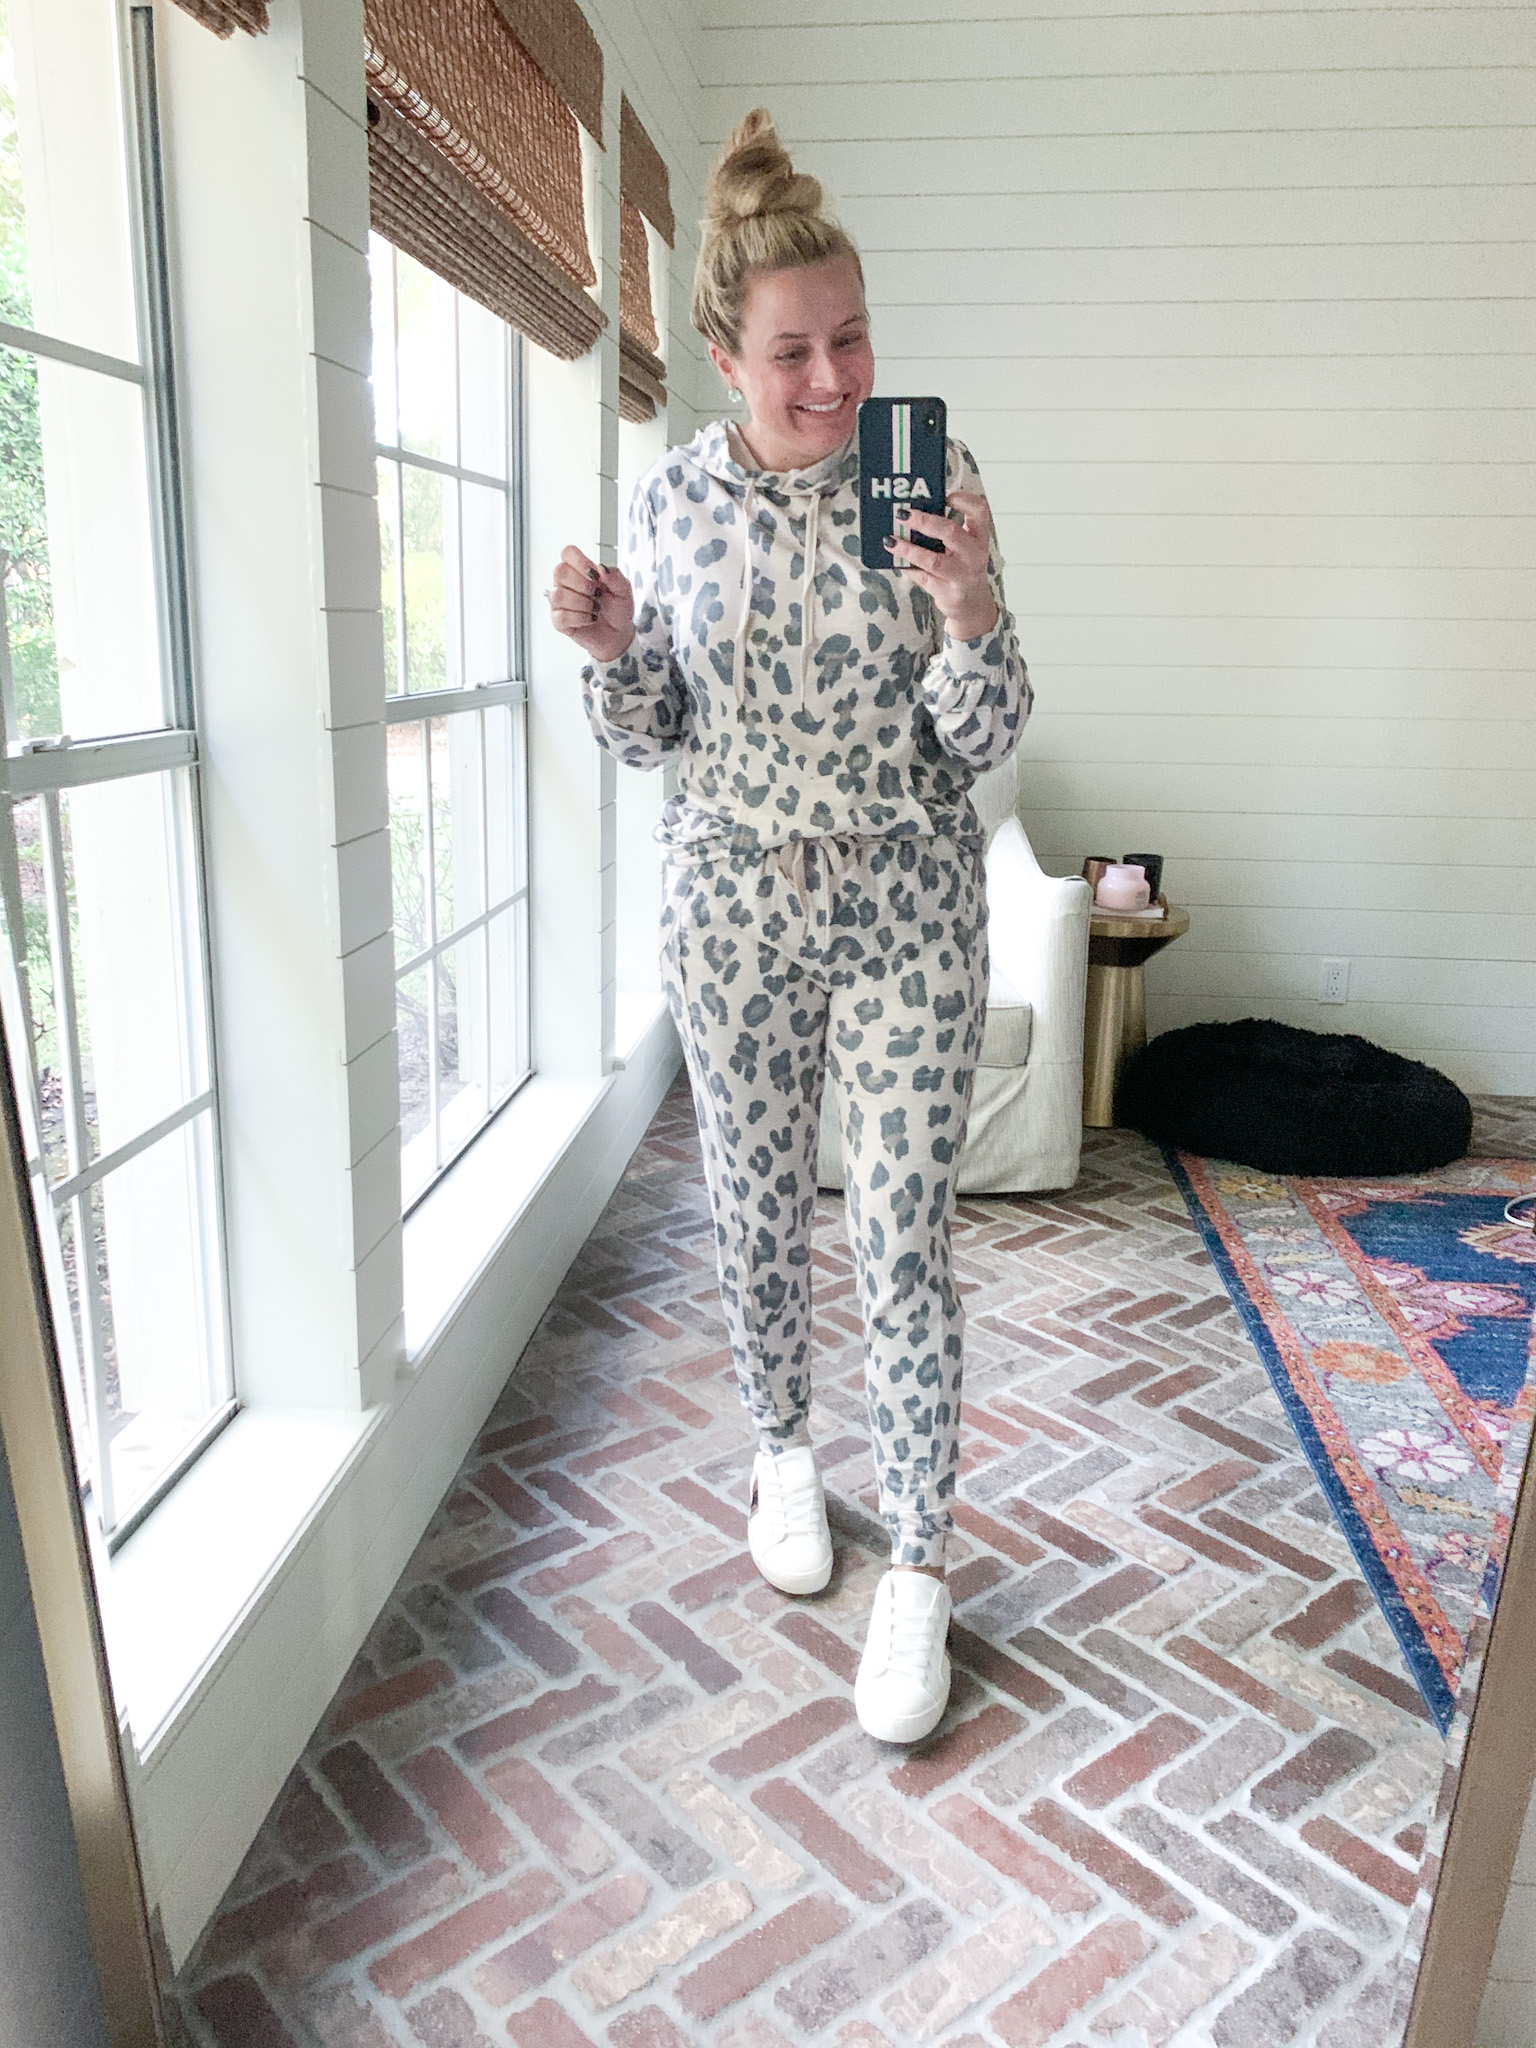 Fall Clothing by popular Houston fashion blog, Fancy Ashley: image of a woman wearing a Walmart Scoop Women's Animal Printed Joggers with Front Seaming, Walmart Scoop Women's Leopard Print French Terry Hoodie, and a pair of Walmart Time and Tru Women's Fashion Sneakers.